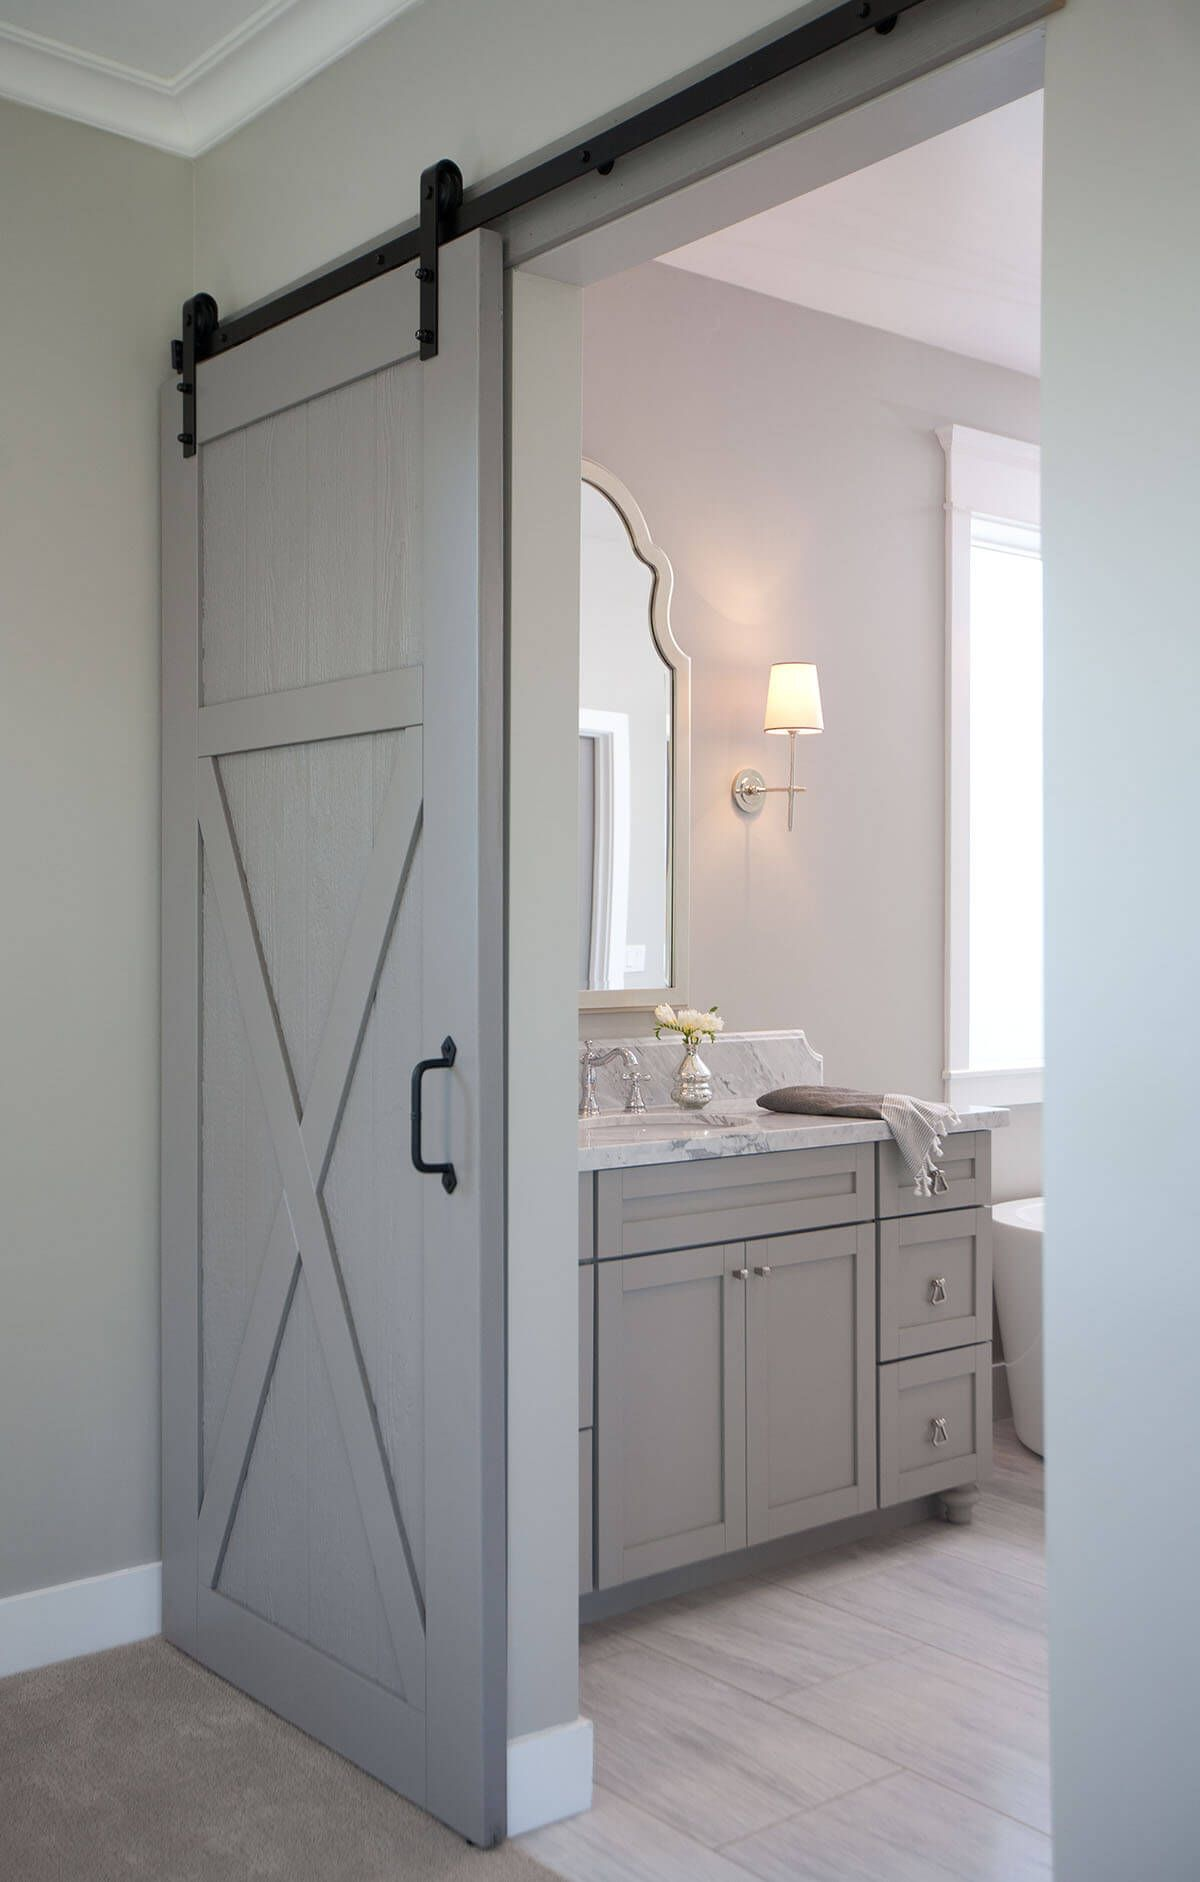 Bathroom Barn Door Ideas.Country Chic 29 Sliding Barn Door Ideas Light Grey